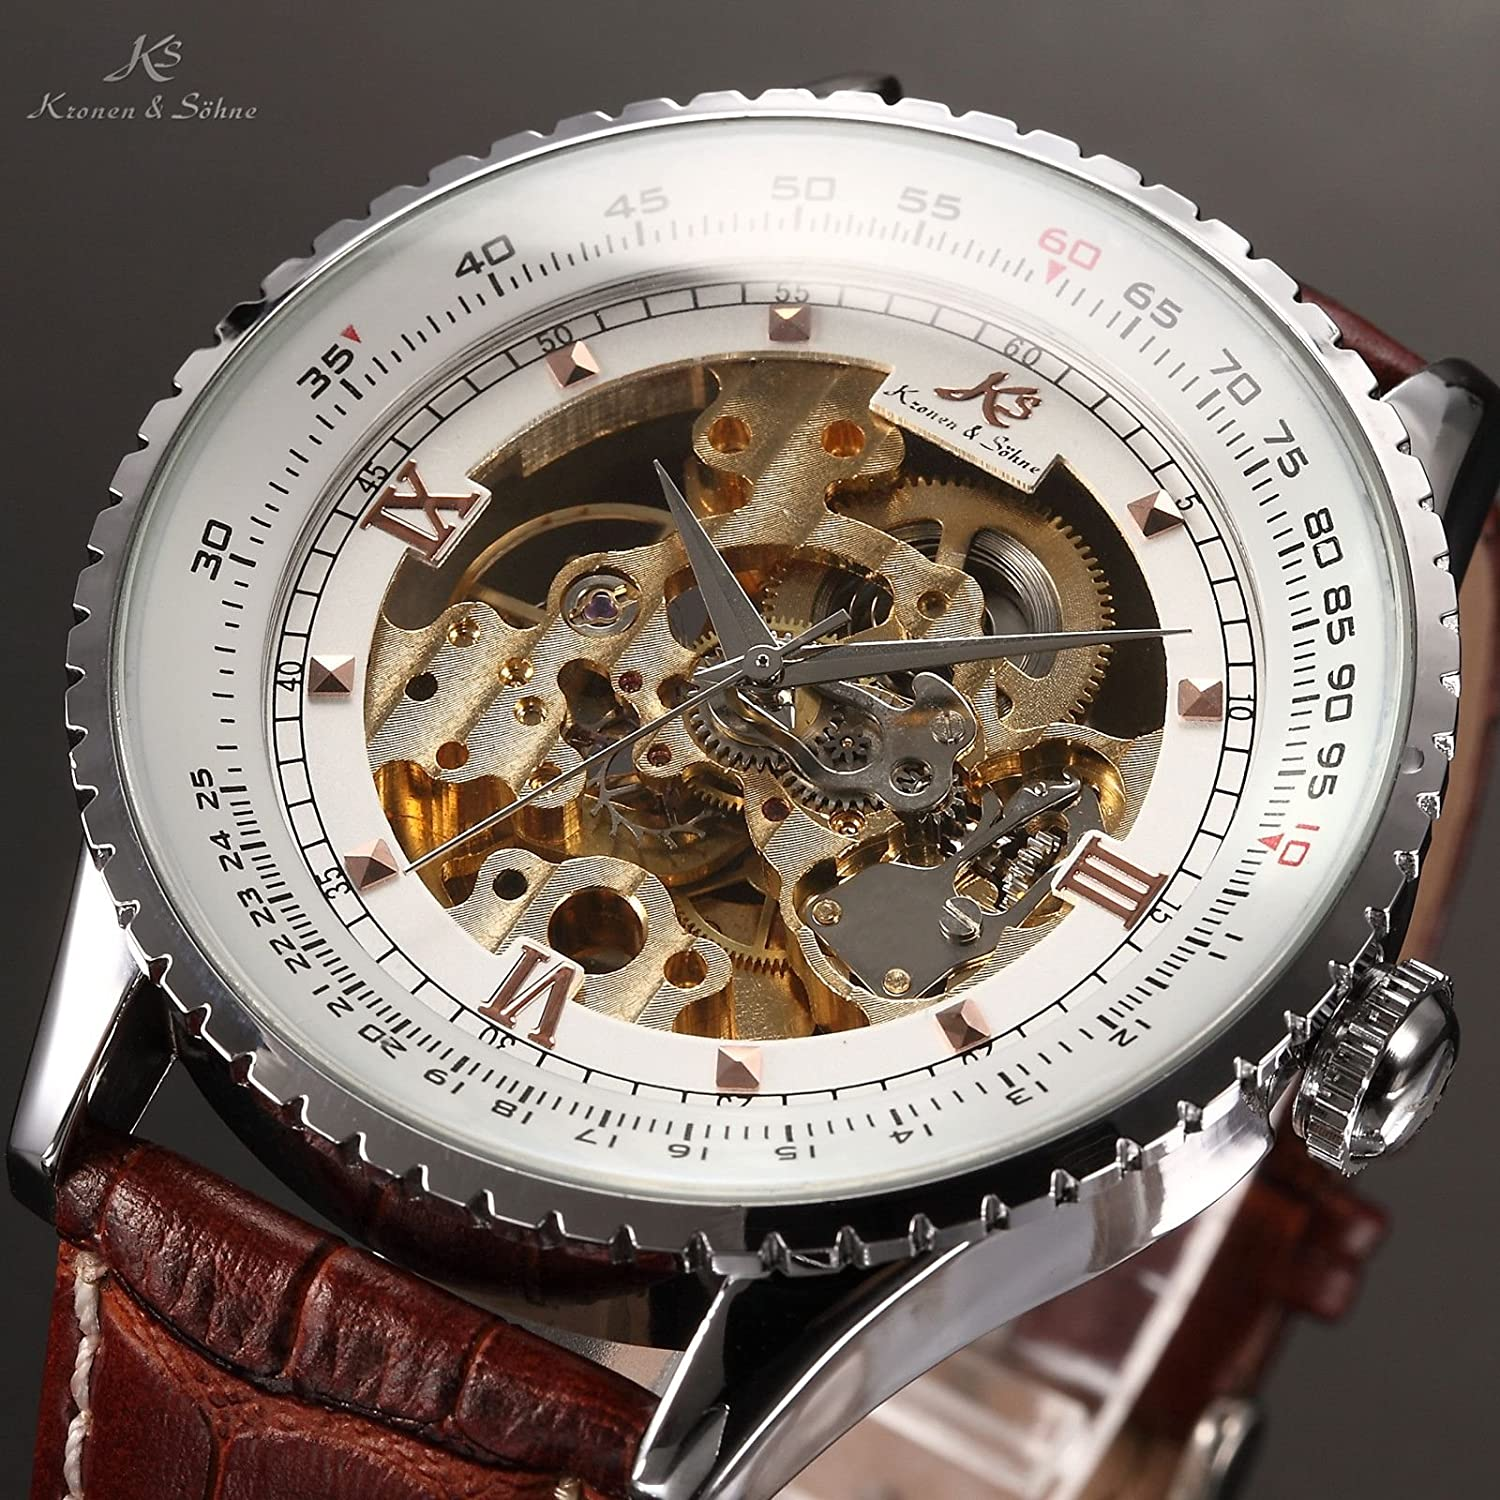 ladies oak watches brand set akatakuya complete quartz royal watch audemars piguet new product